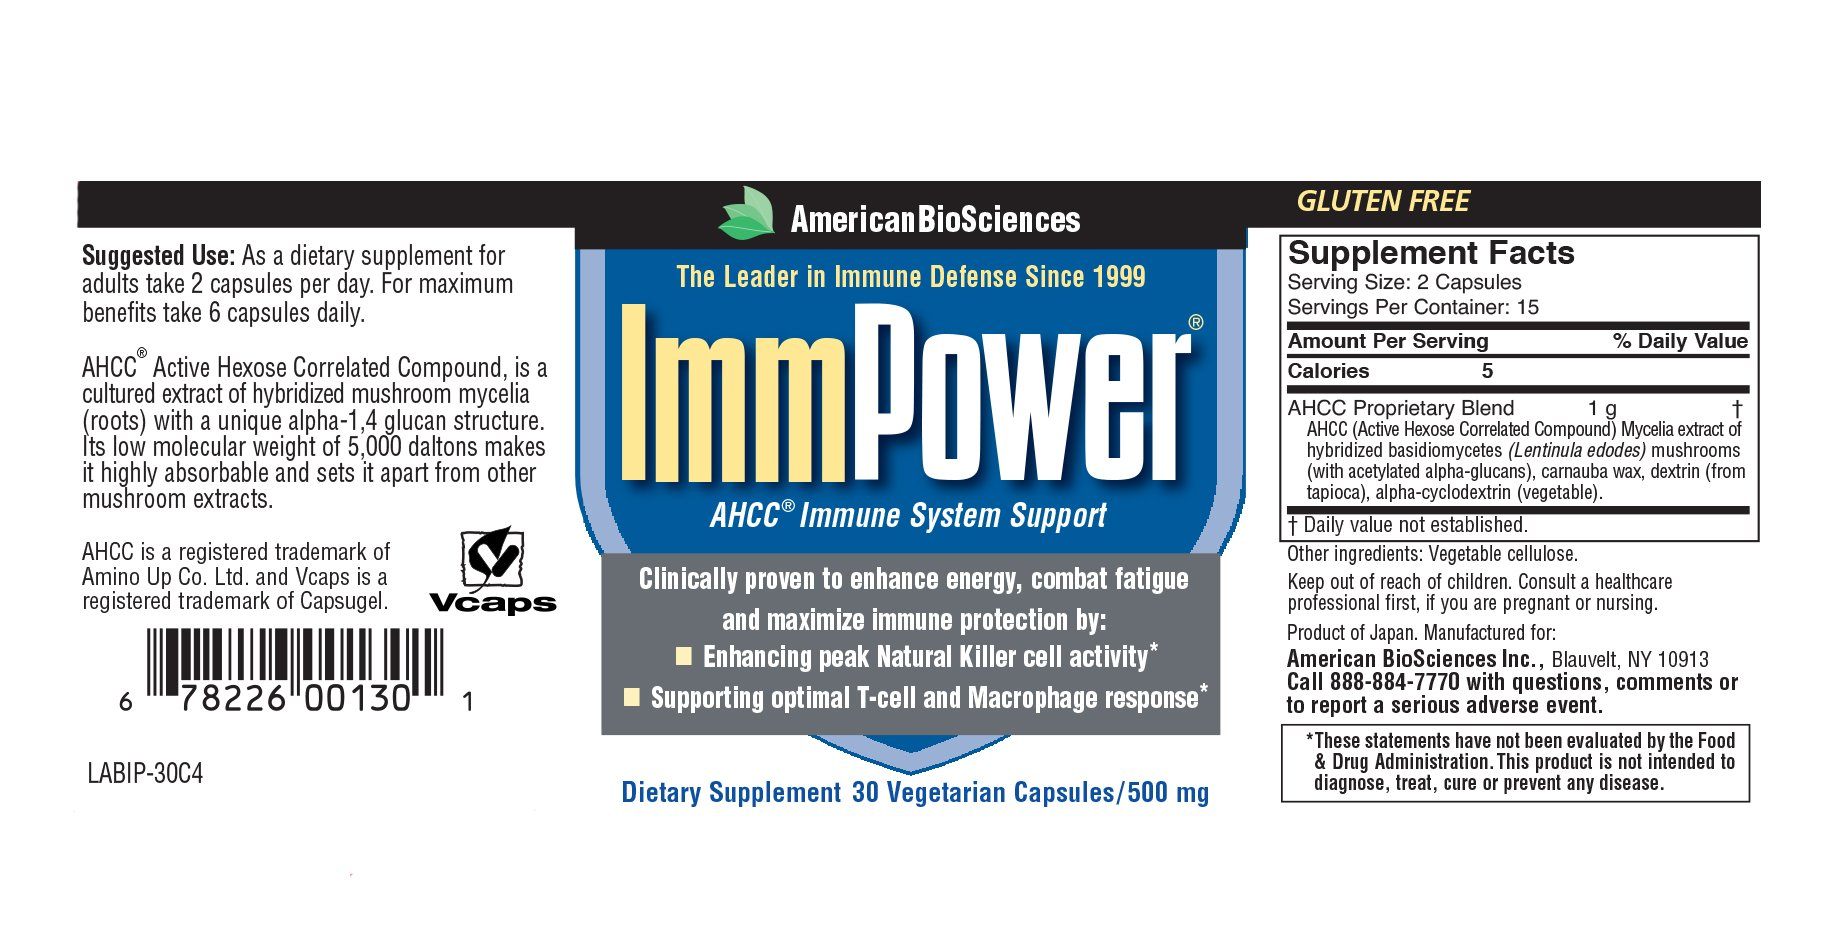 American BioSciences ImmPower AHCC Supplement 6-Pack, Enhanced Immune Support, Natural Killer Cell Activity and Cytokine Production, 30 Vegetarian Capsules, 500 milligrams per Capsule by American Biosciences (Image #2)